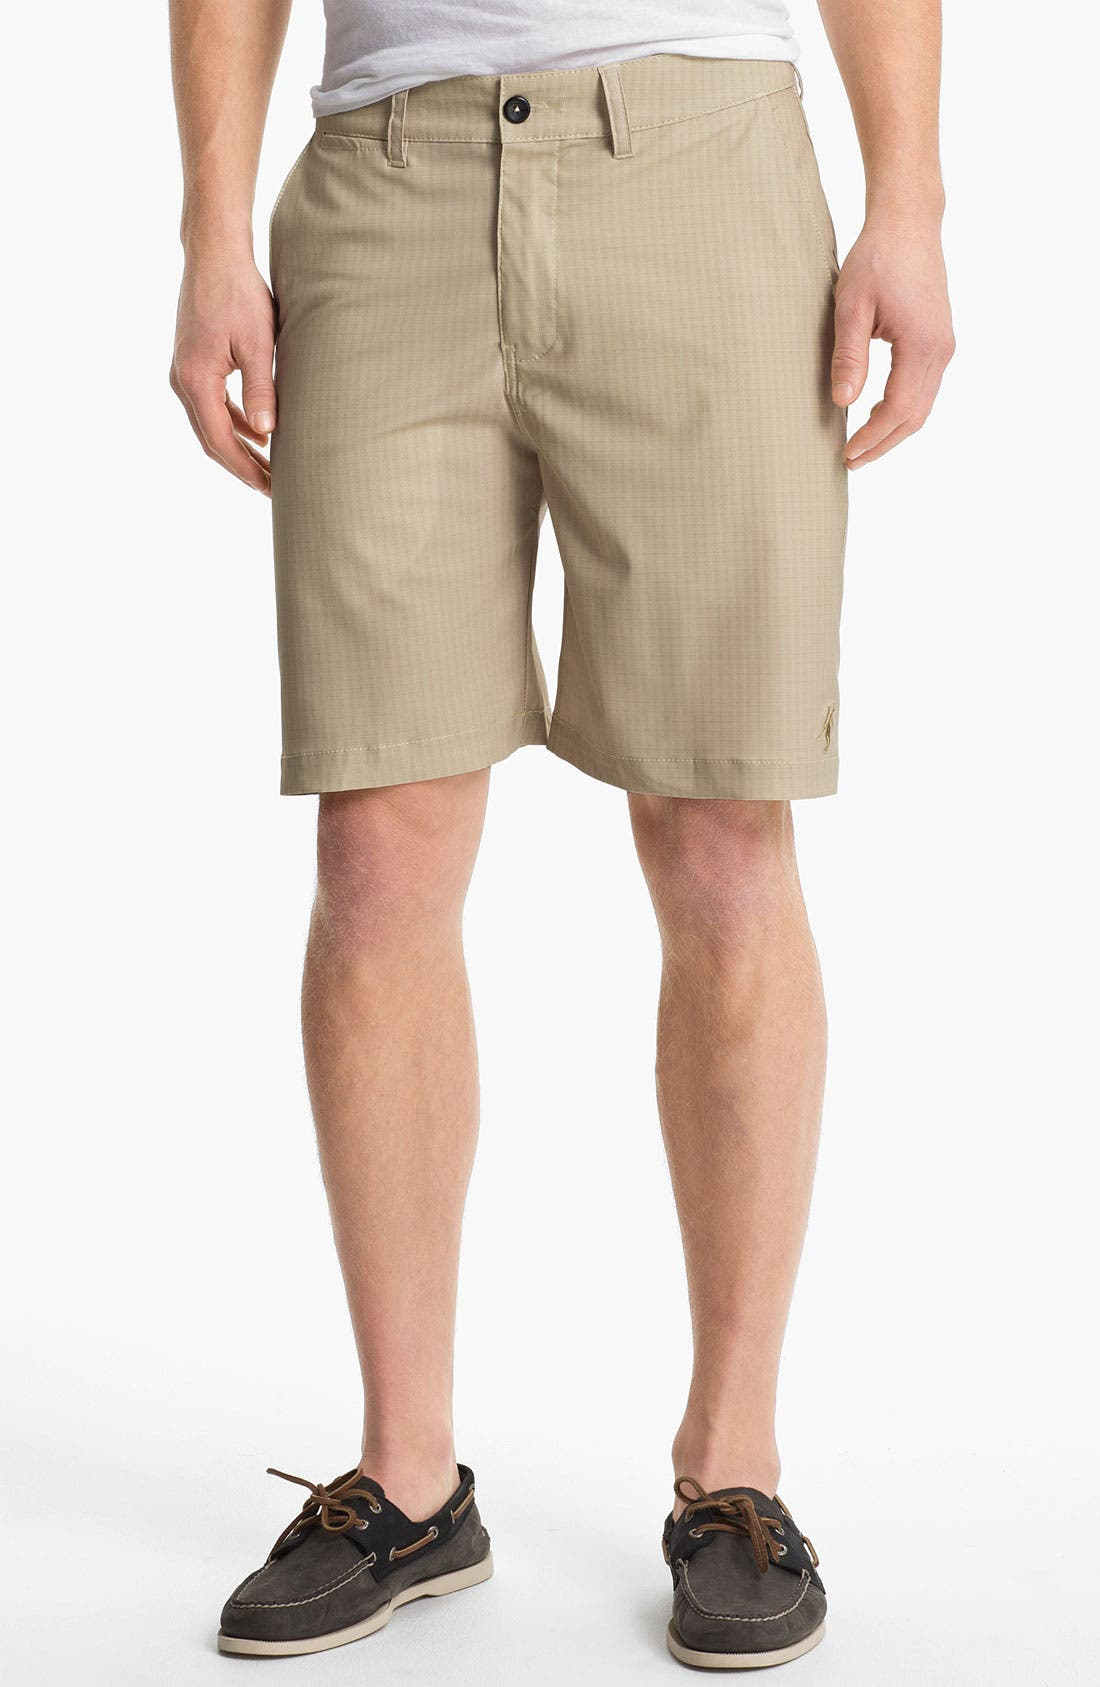 Alternate Image 1 Selected - Toes on the Nose 'Nomad' Hybrid Shorts